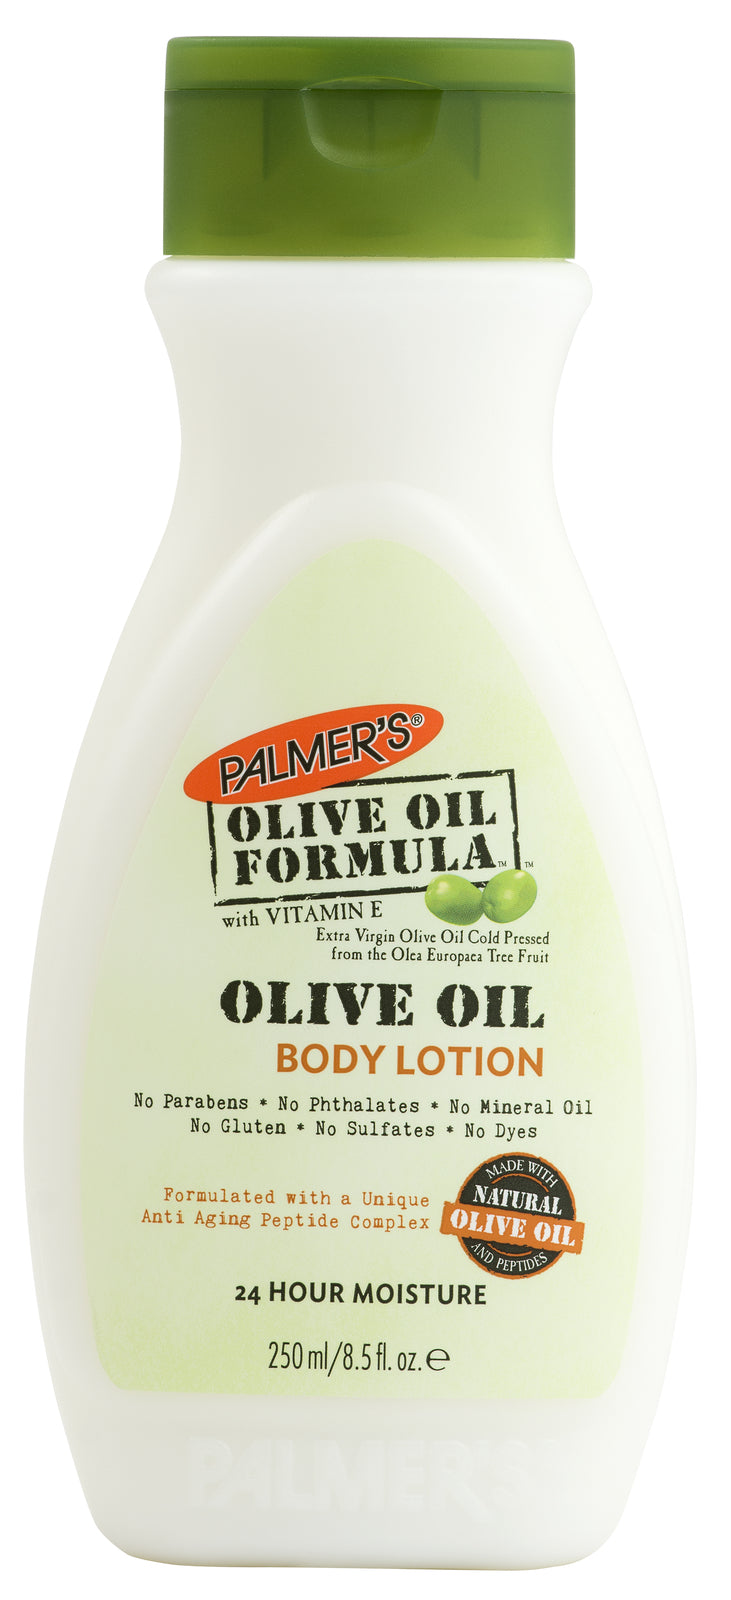 Palmers: Olive Oil Body Lotion (250ml)